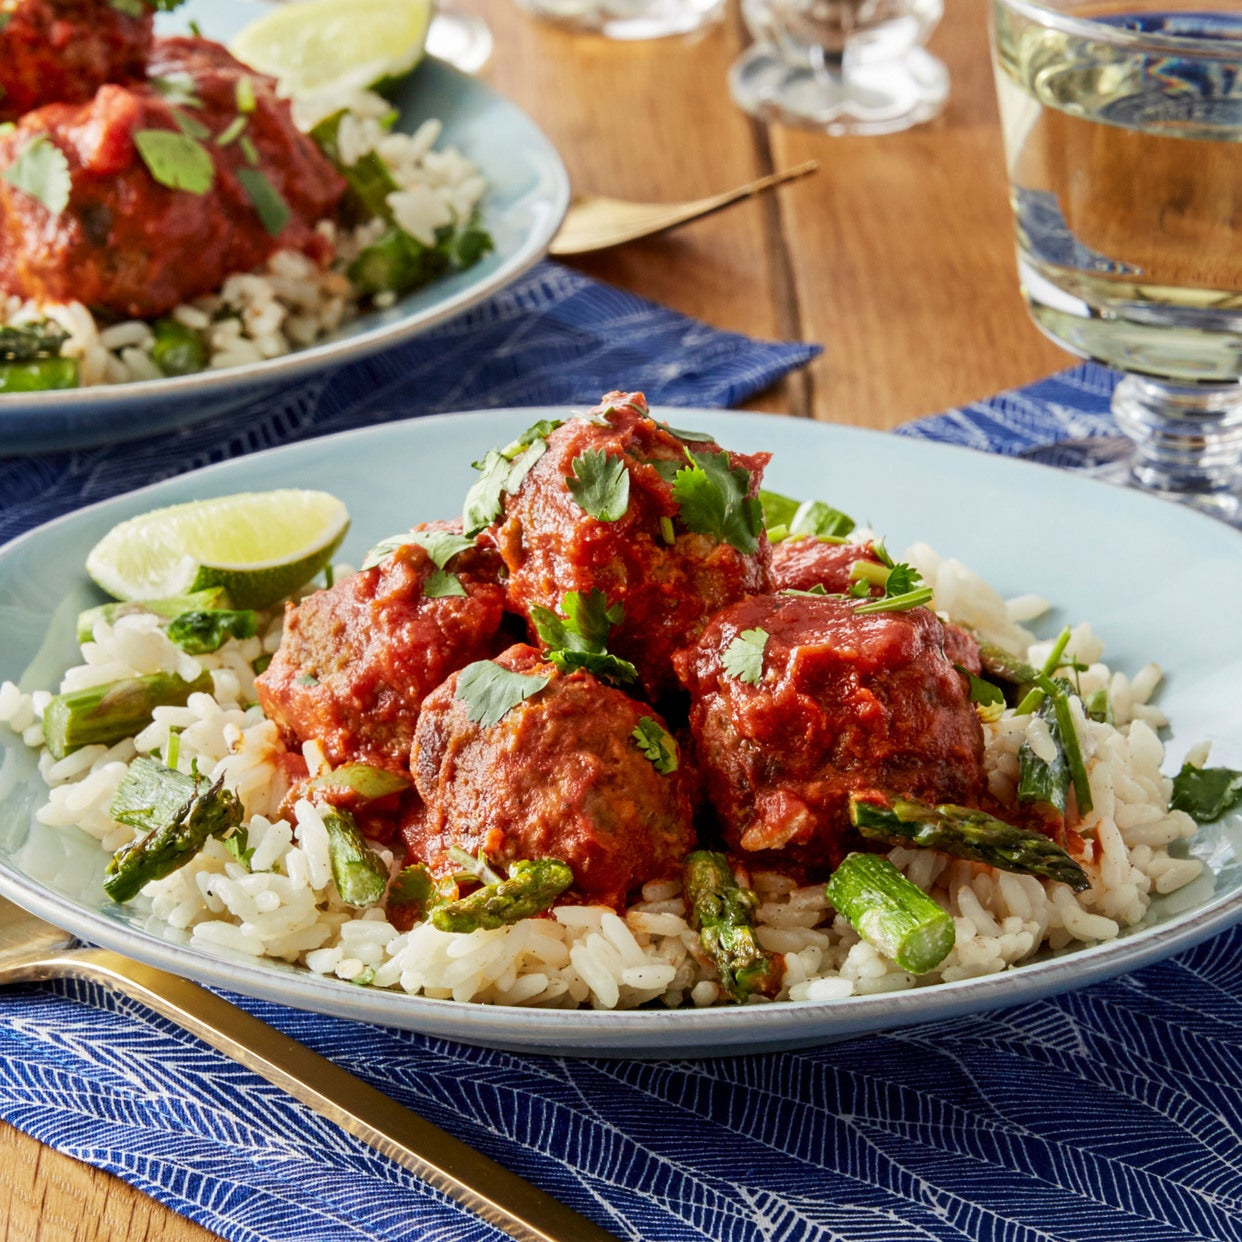 Meatballs & Tomato Sauce with Asparagus & Creamy Rice